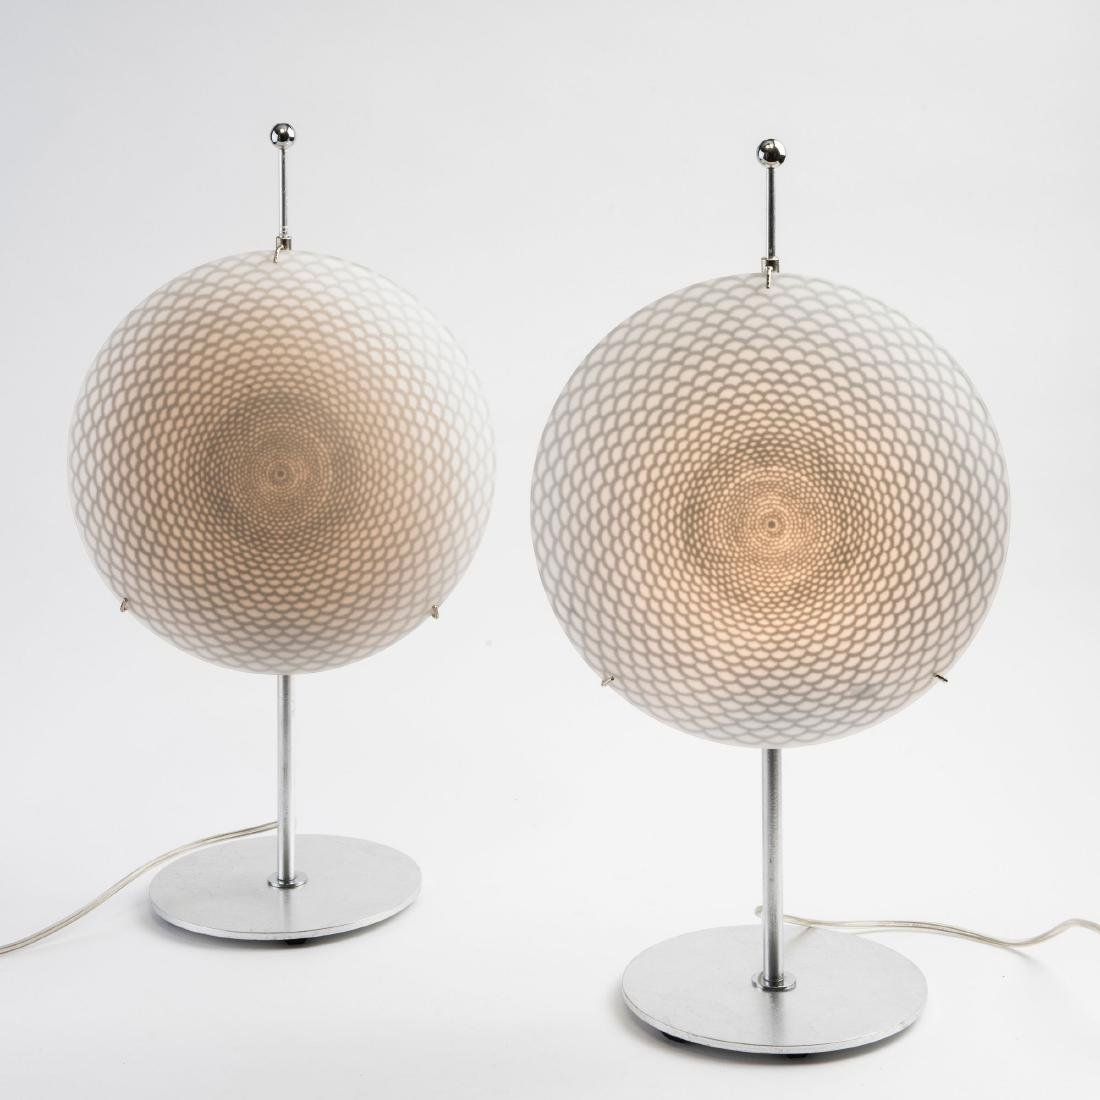 Two 'Ottica' table lights, c. 1995 - 2